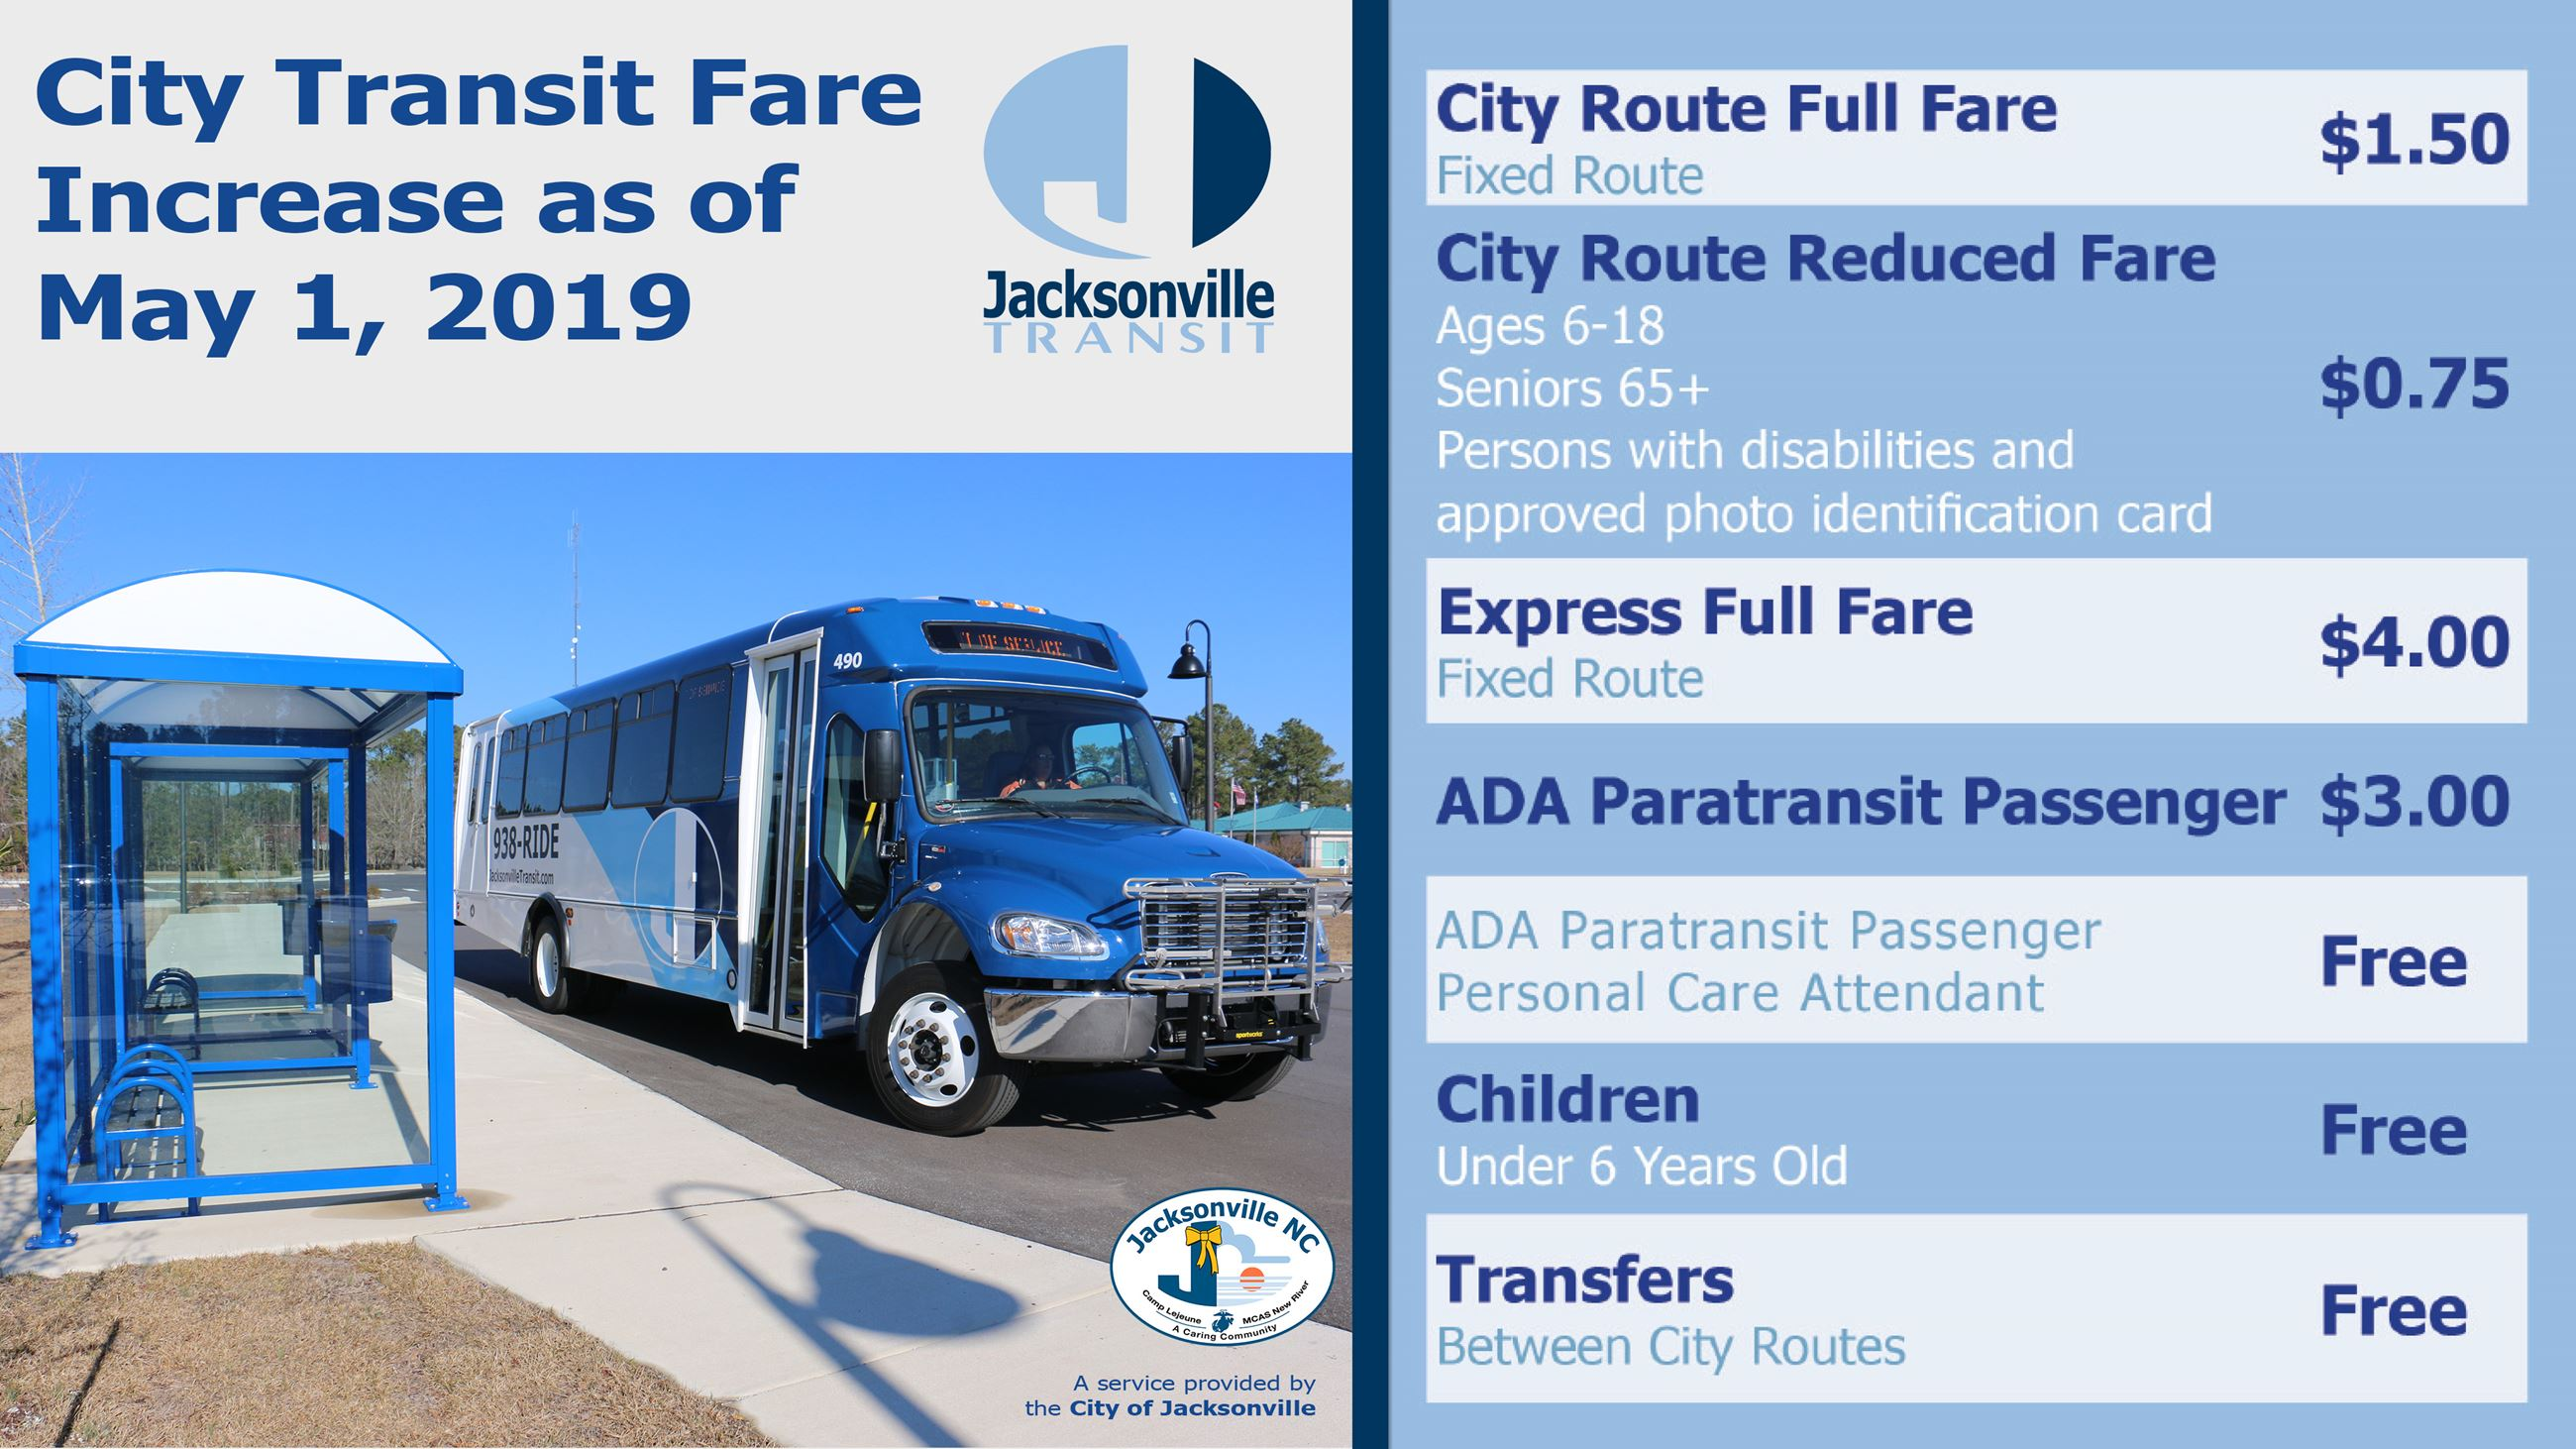 Transit Fare increase as of May 2019